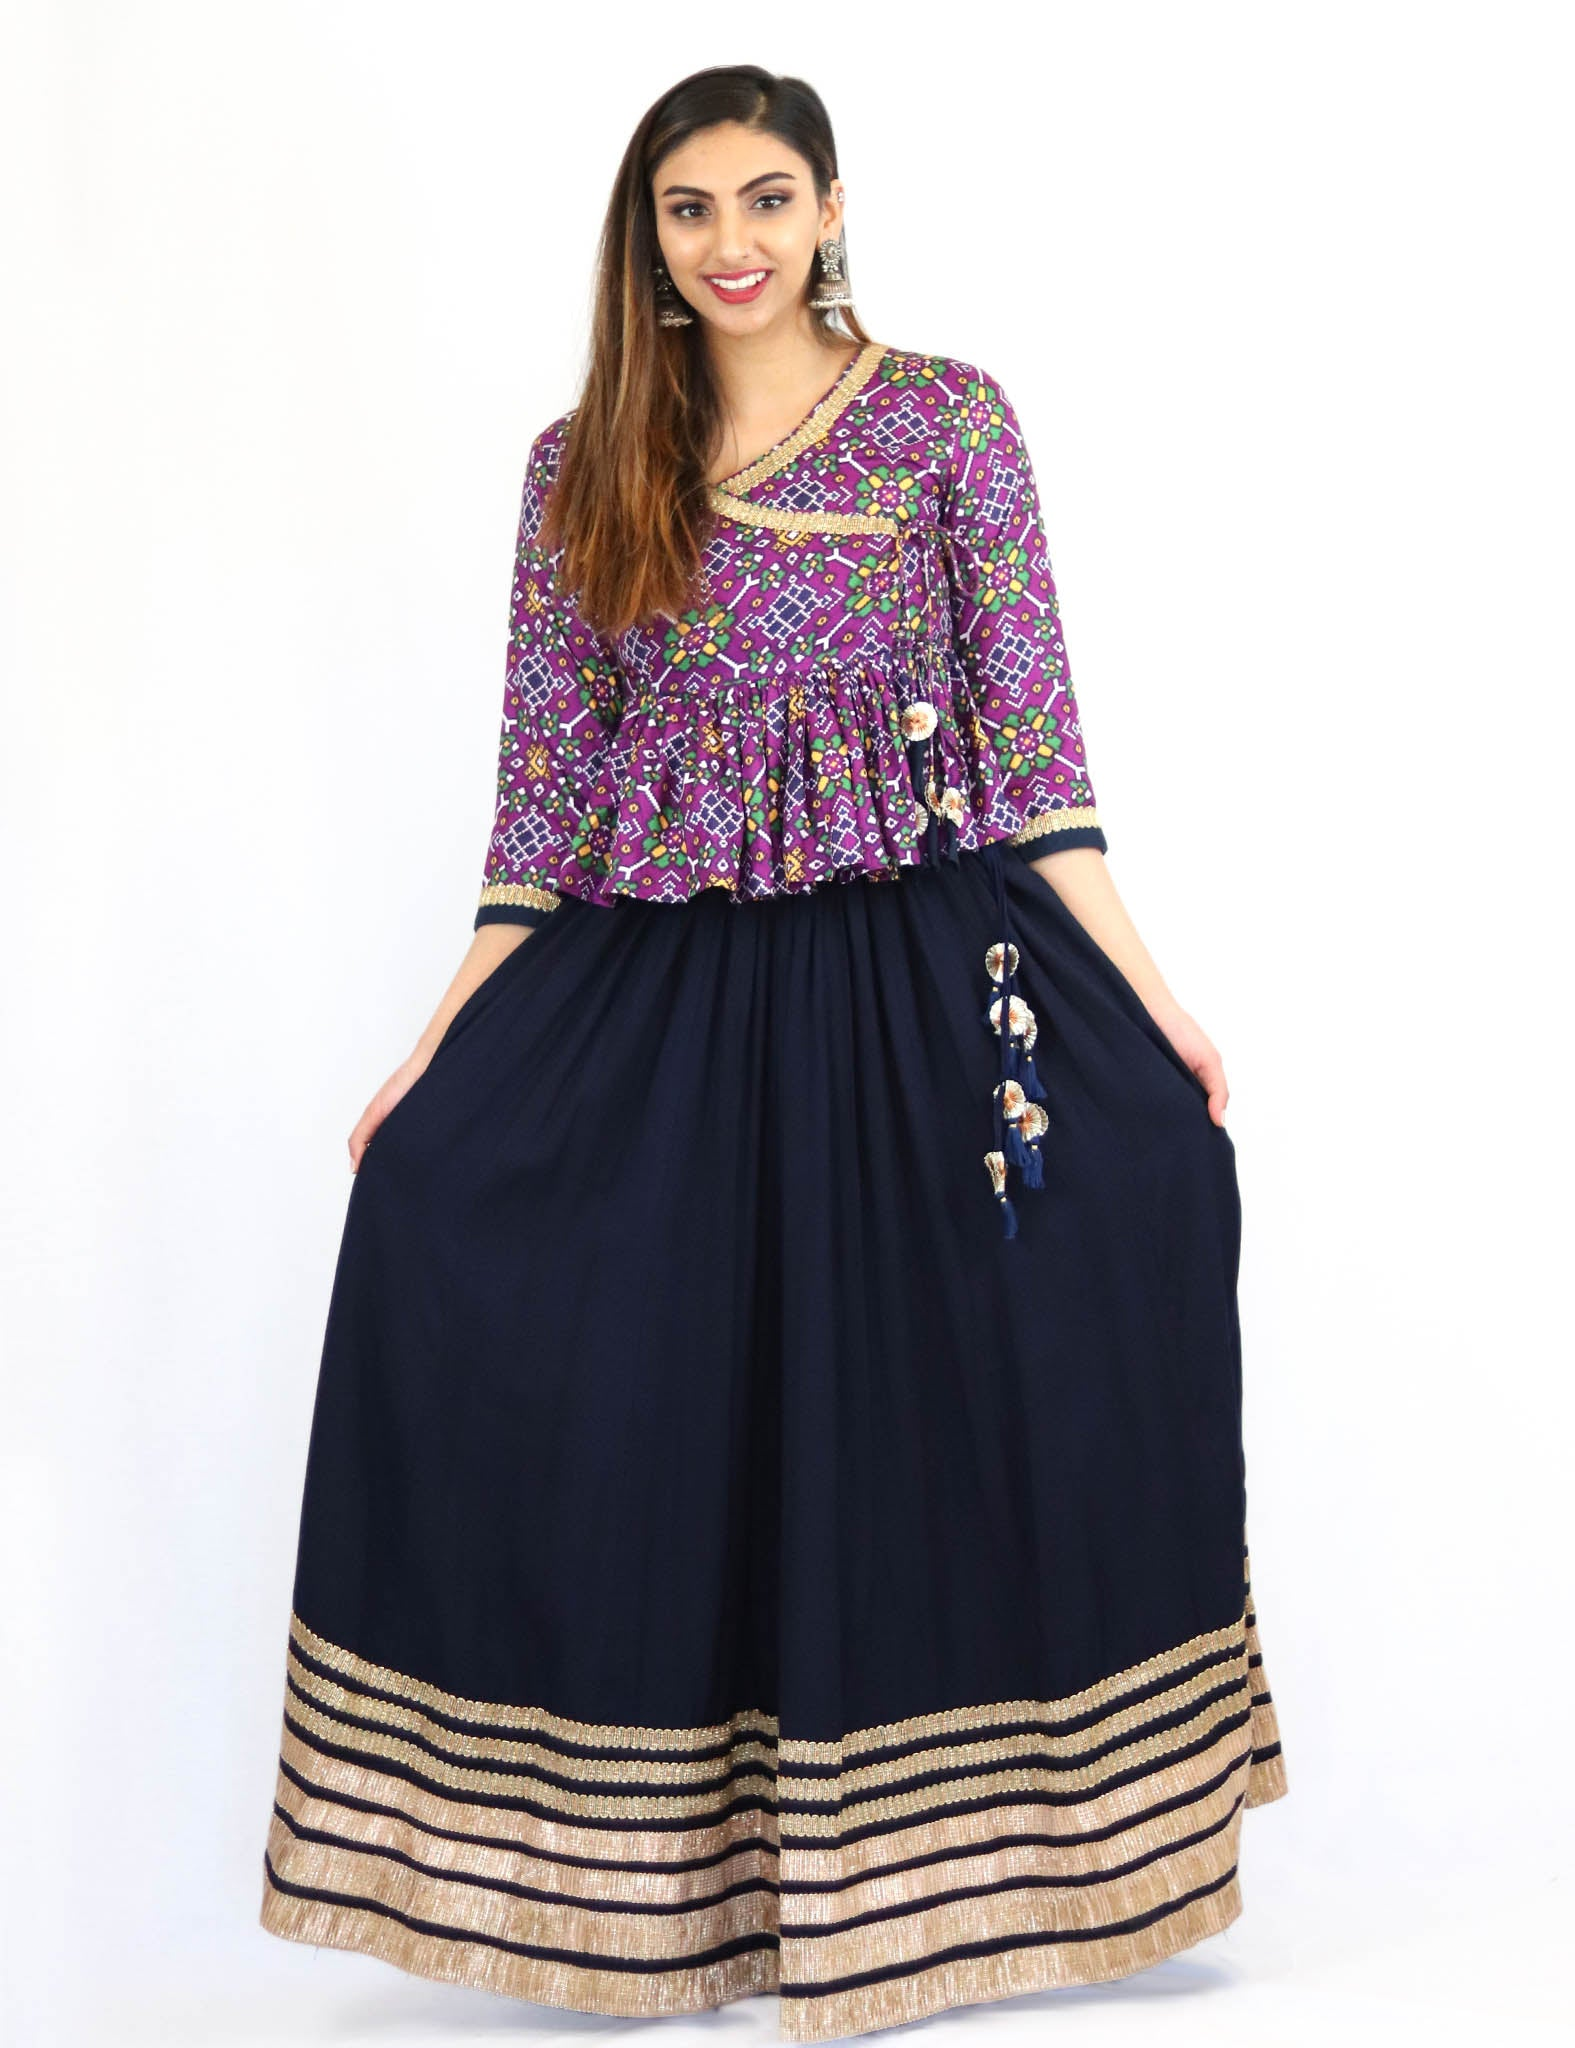 Rent Blue Lehenga With Purple Printed Kediyu Top